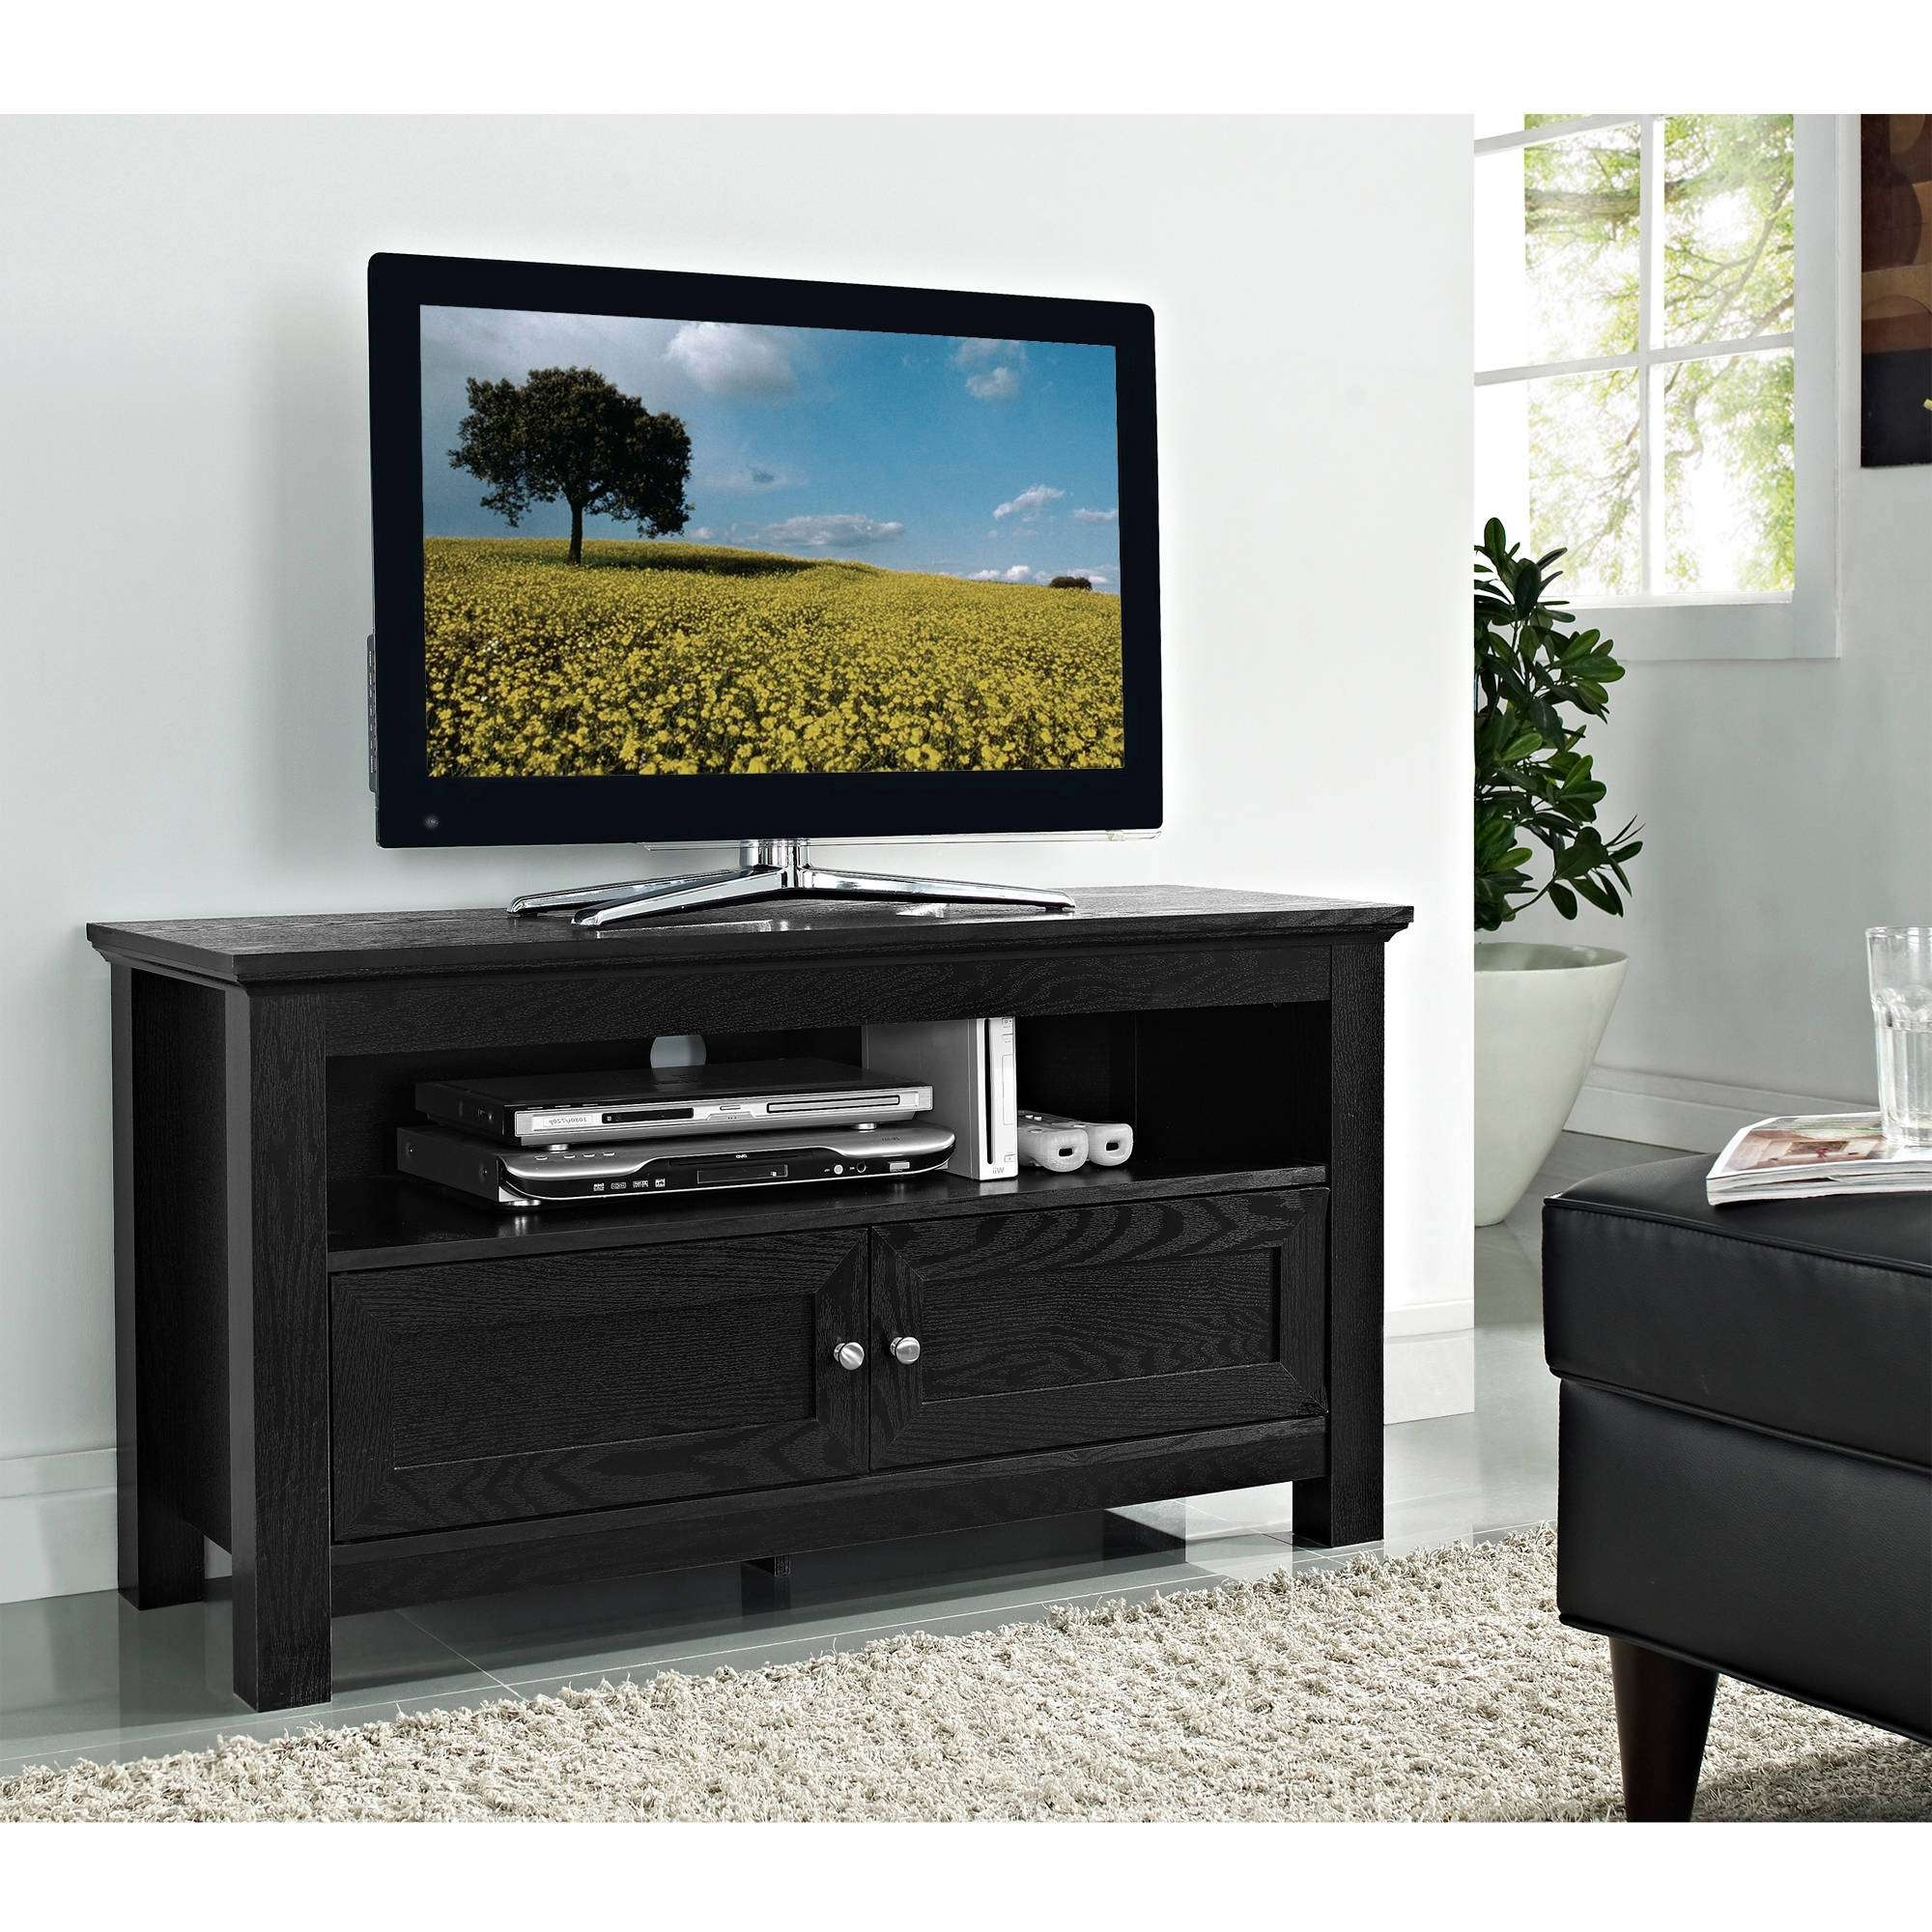 Black Laminated Wooden Tall Tv Stand For Bedroom Using Double With Regard To Tall Black Tv Cabinets (View 2 of 20)